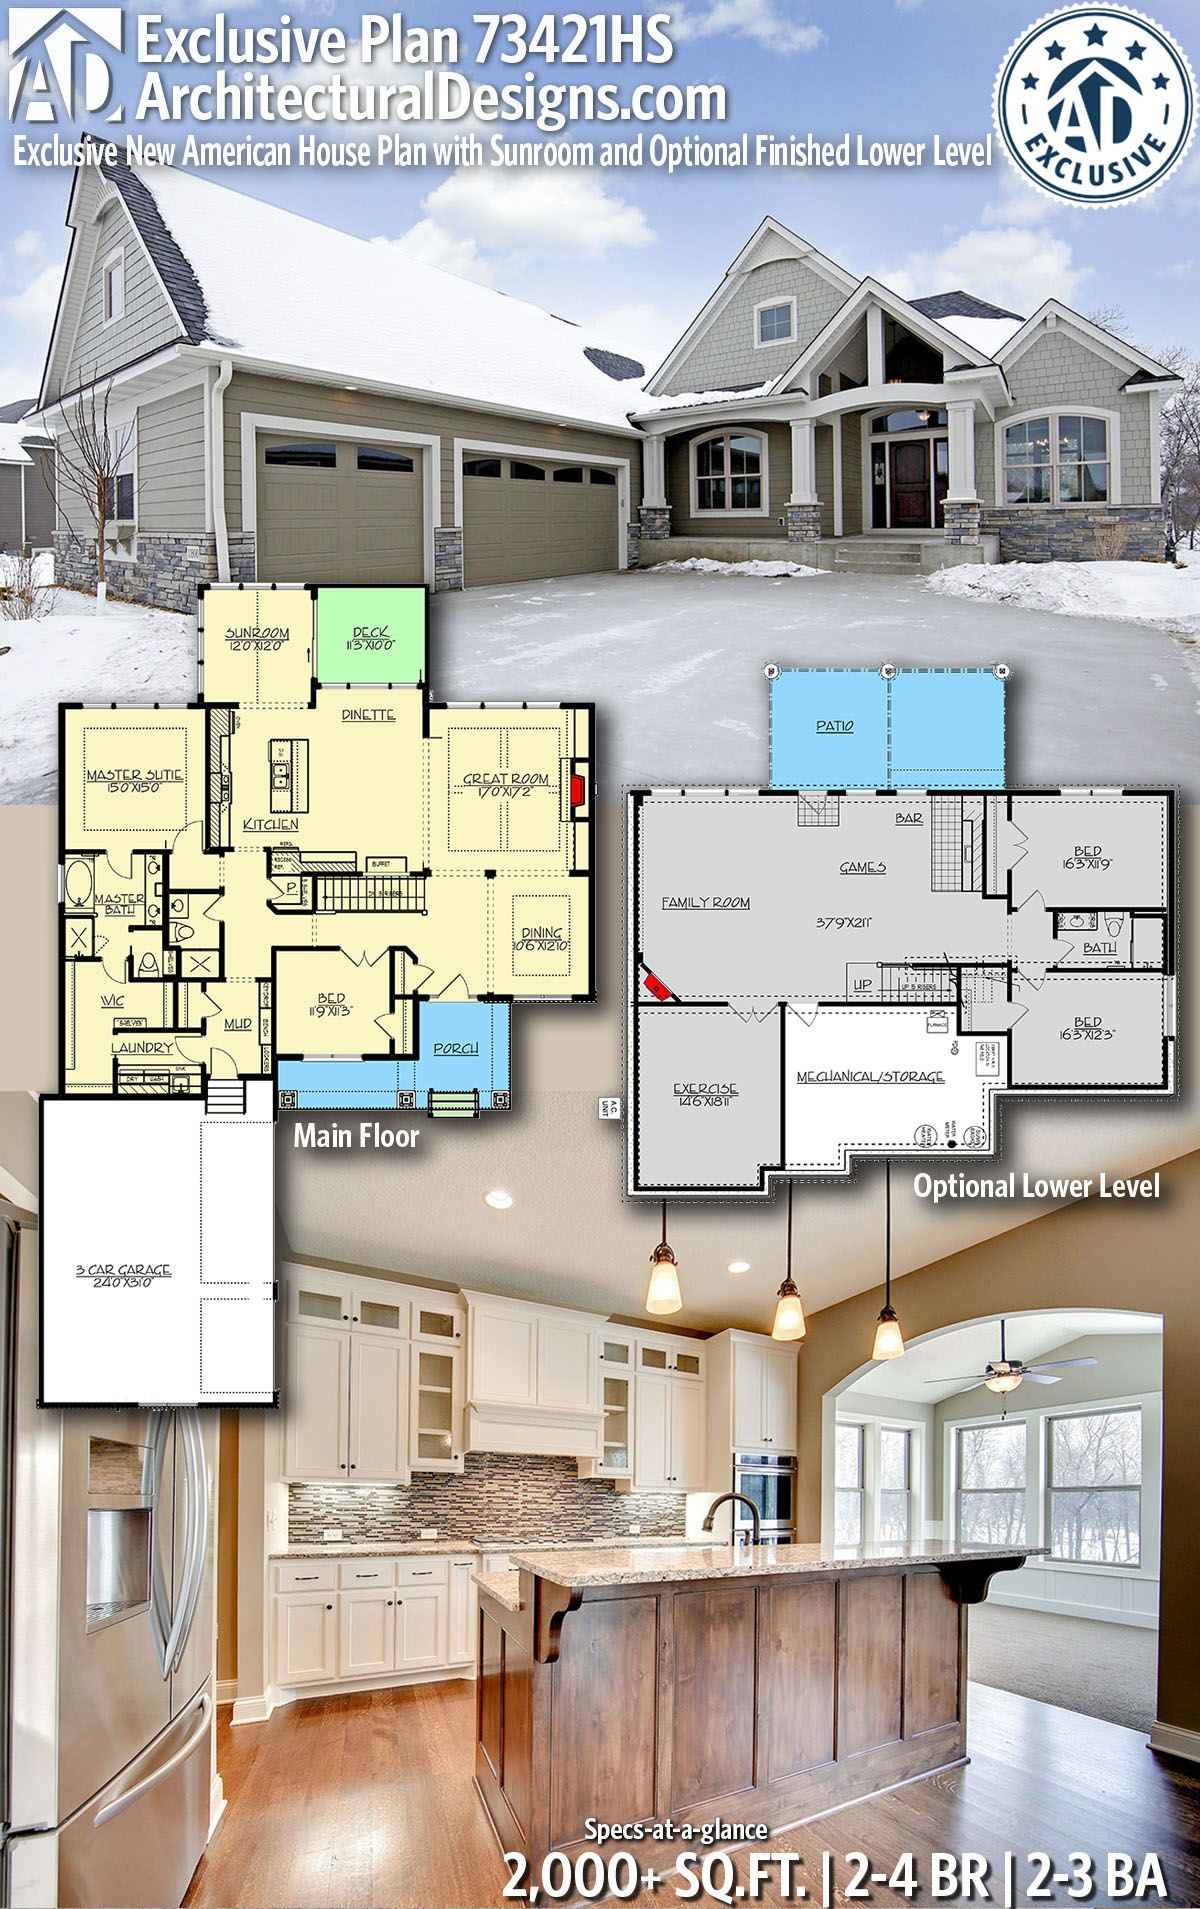 Architectural Designs New American Home Plan 73421hs Gives You 2 4